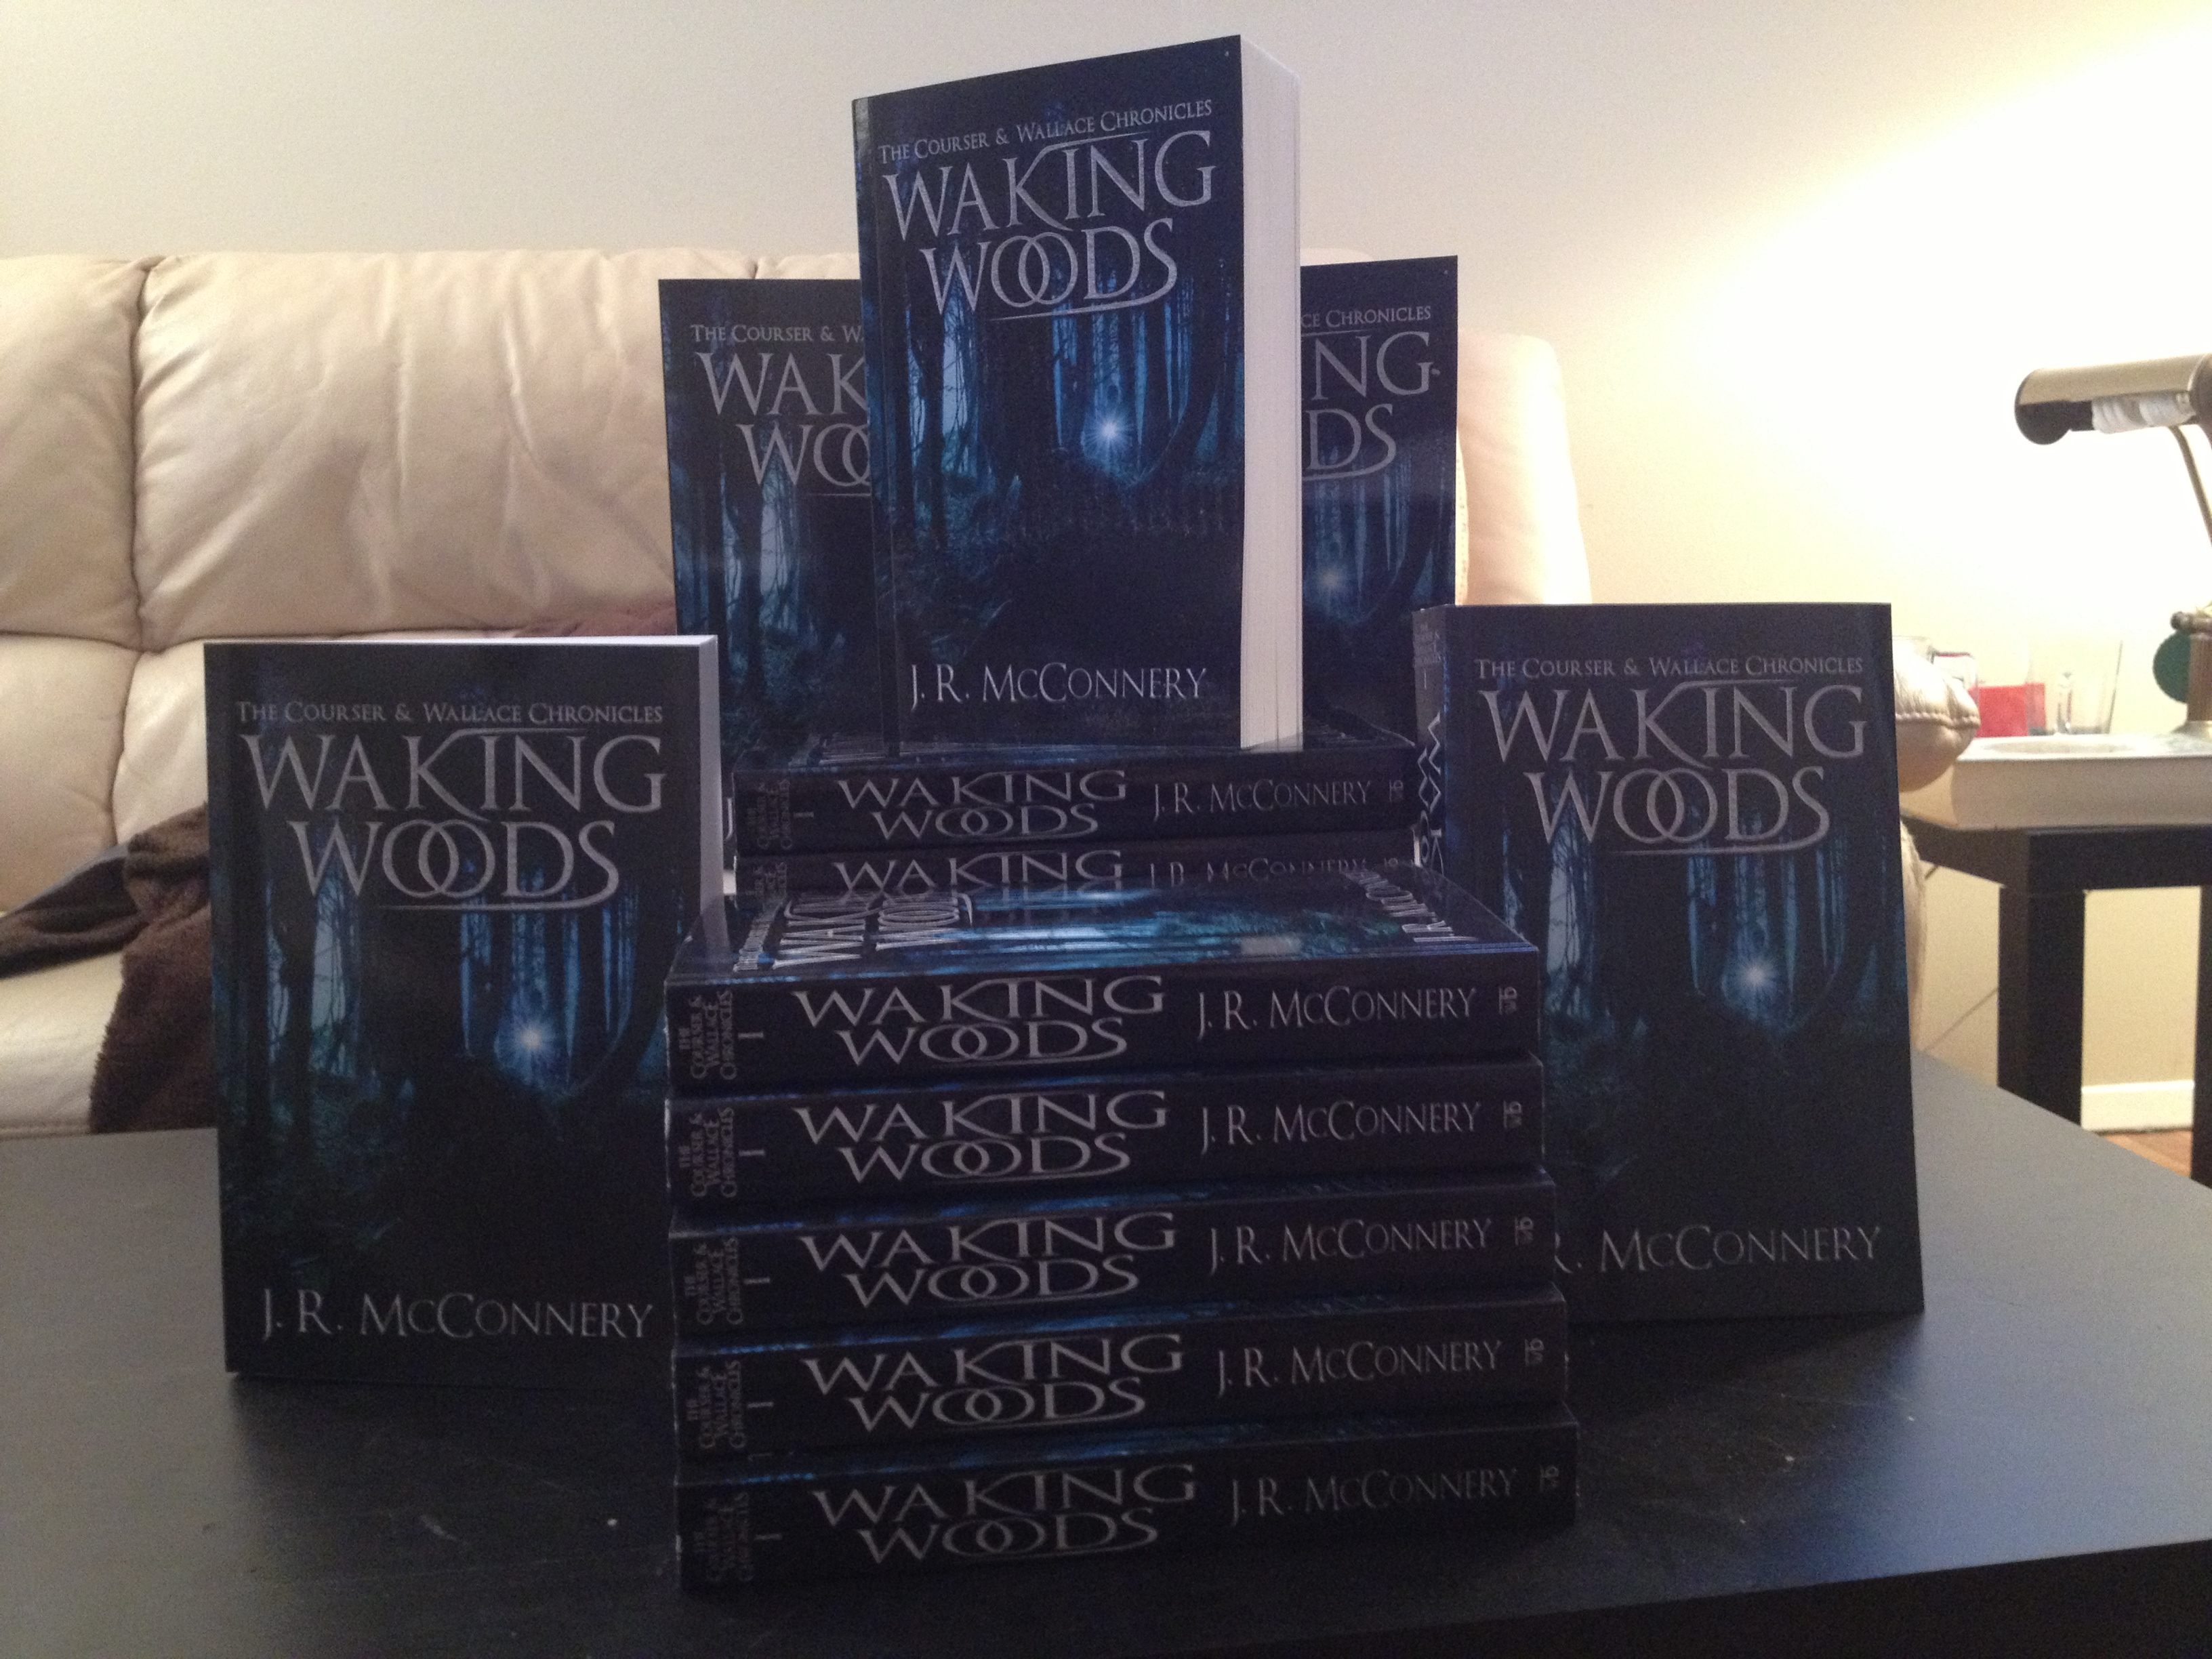 Waking Woods (The Courser & Wallace Chronicles Book 1)